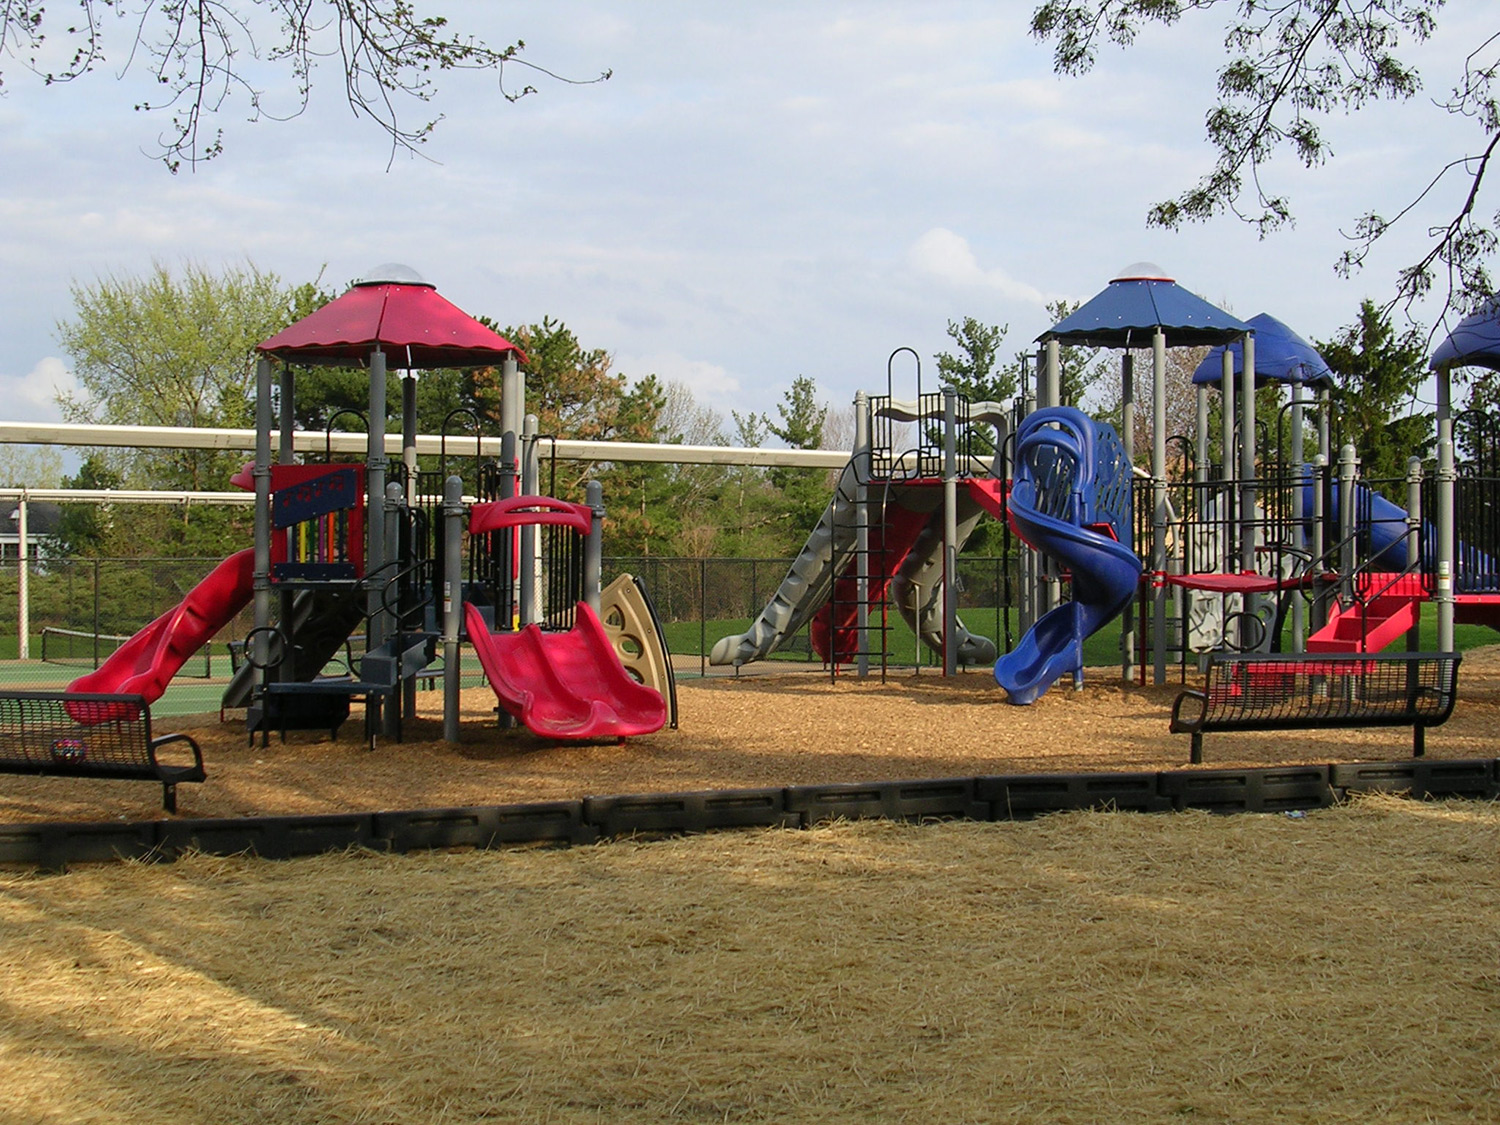 A playground is located in the recreation area of the association, near the pool and clubhouse. Many slides and climbing features give kids a great place to play.